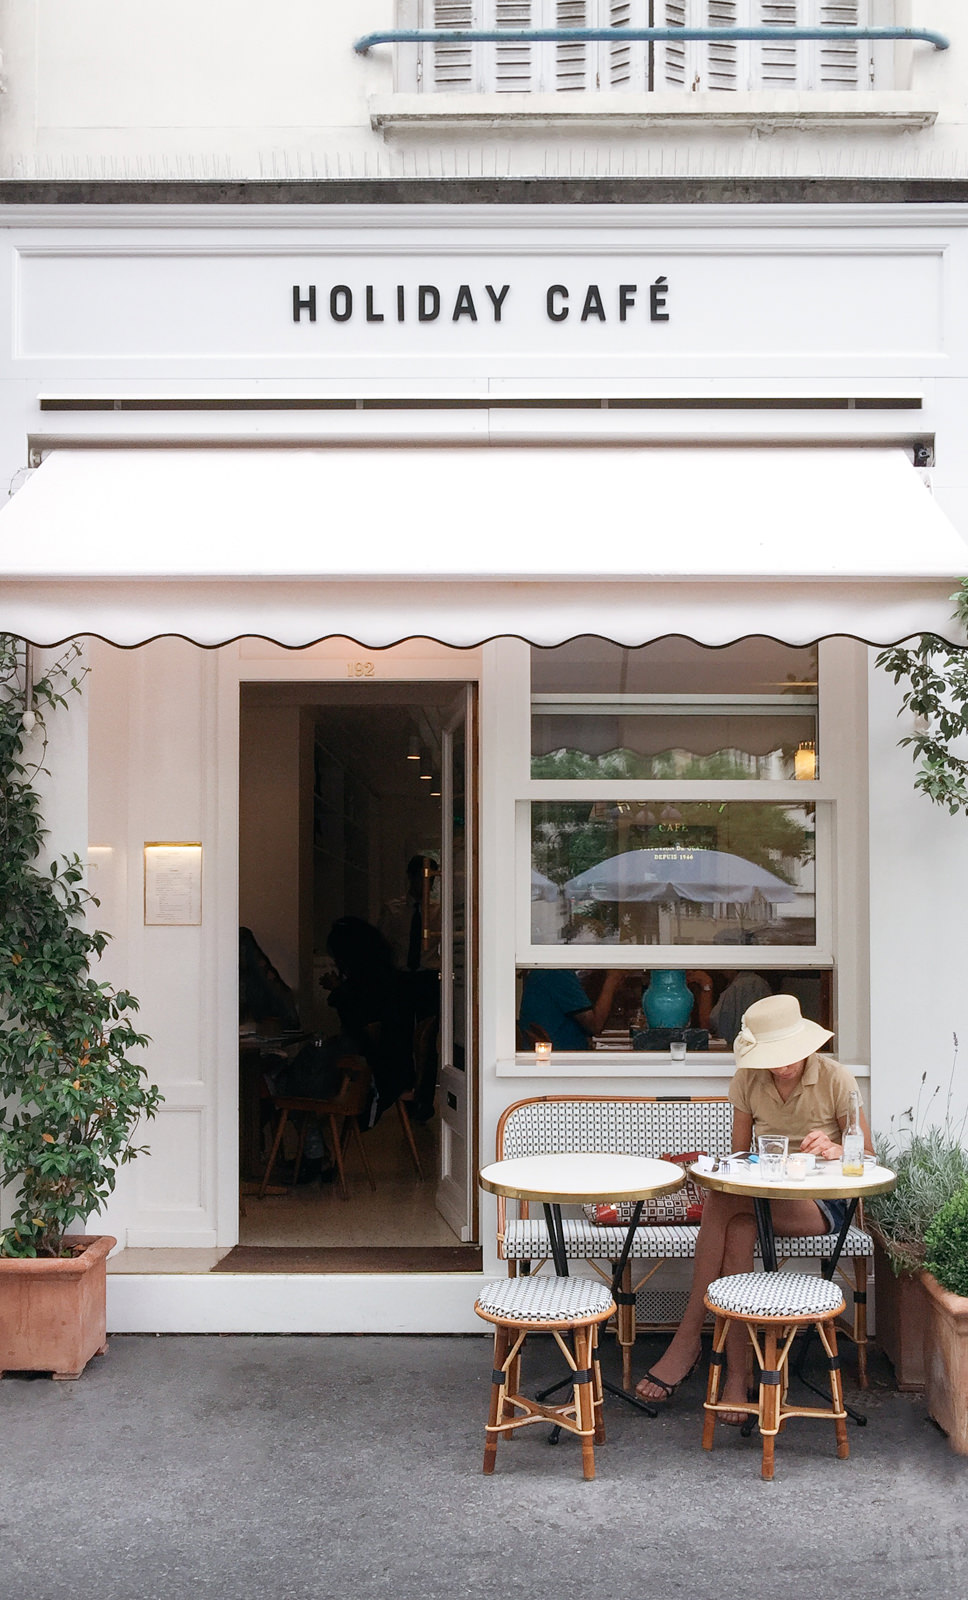 Blog-Mode-And-The-City-Lifestyle-5-petites-choses-187-holiday-cafe